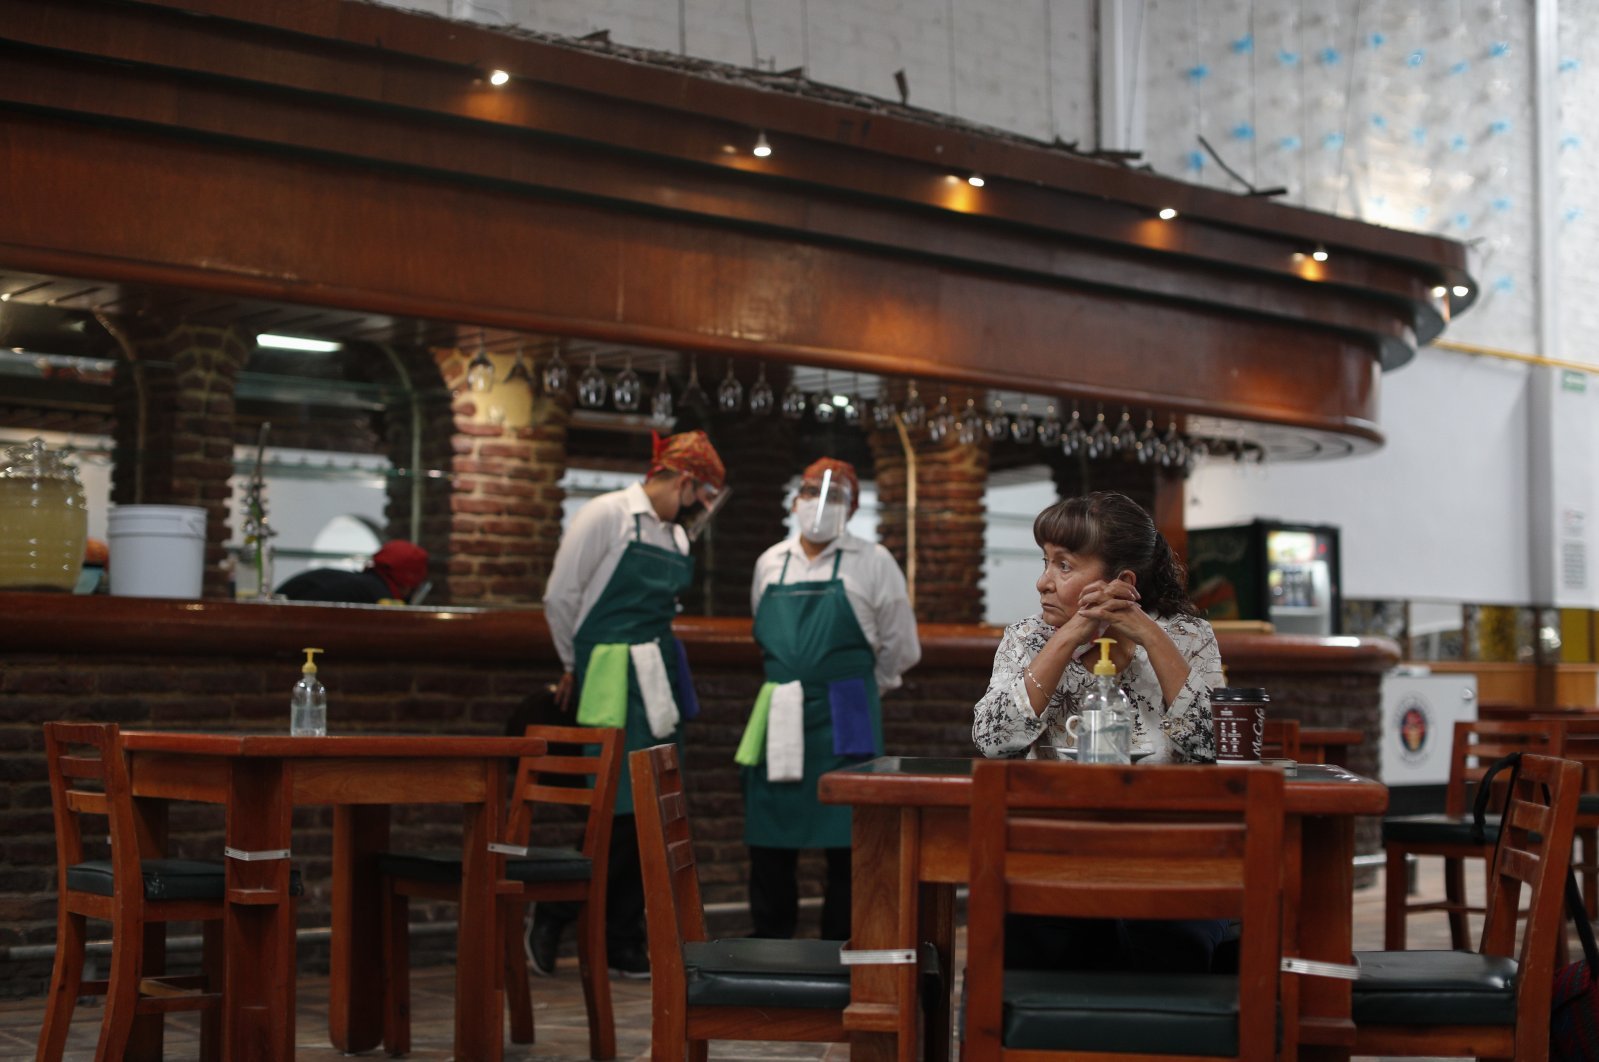 The very first customer sits at a table in Que Viva Mexico, a casual traditional food restaurant that opened its doors amid the ongoing coronavirus pandemic, in central Mexico City, Sept. 1, 2020. (AP Photo)